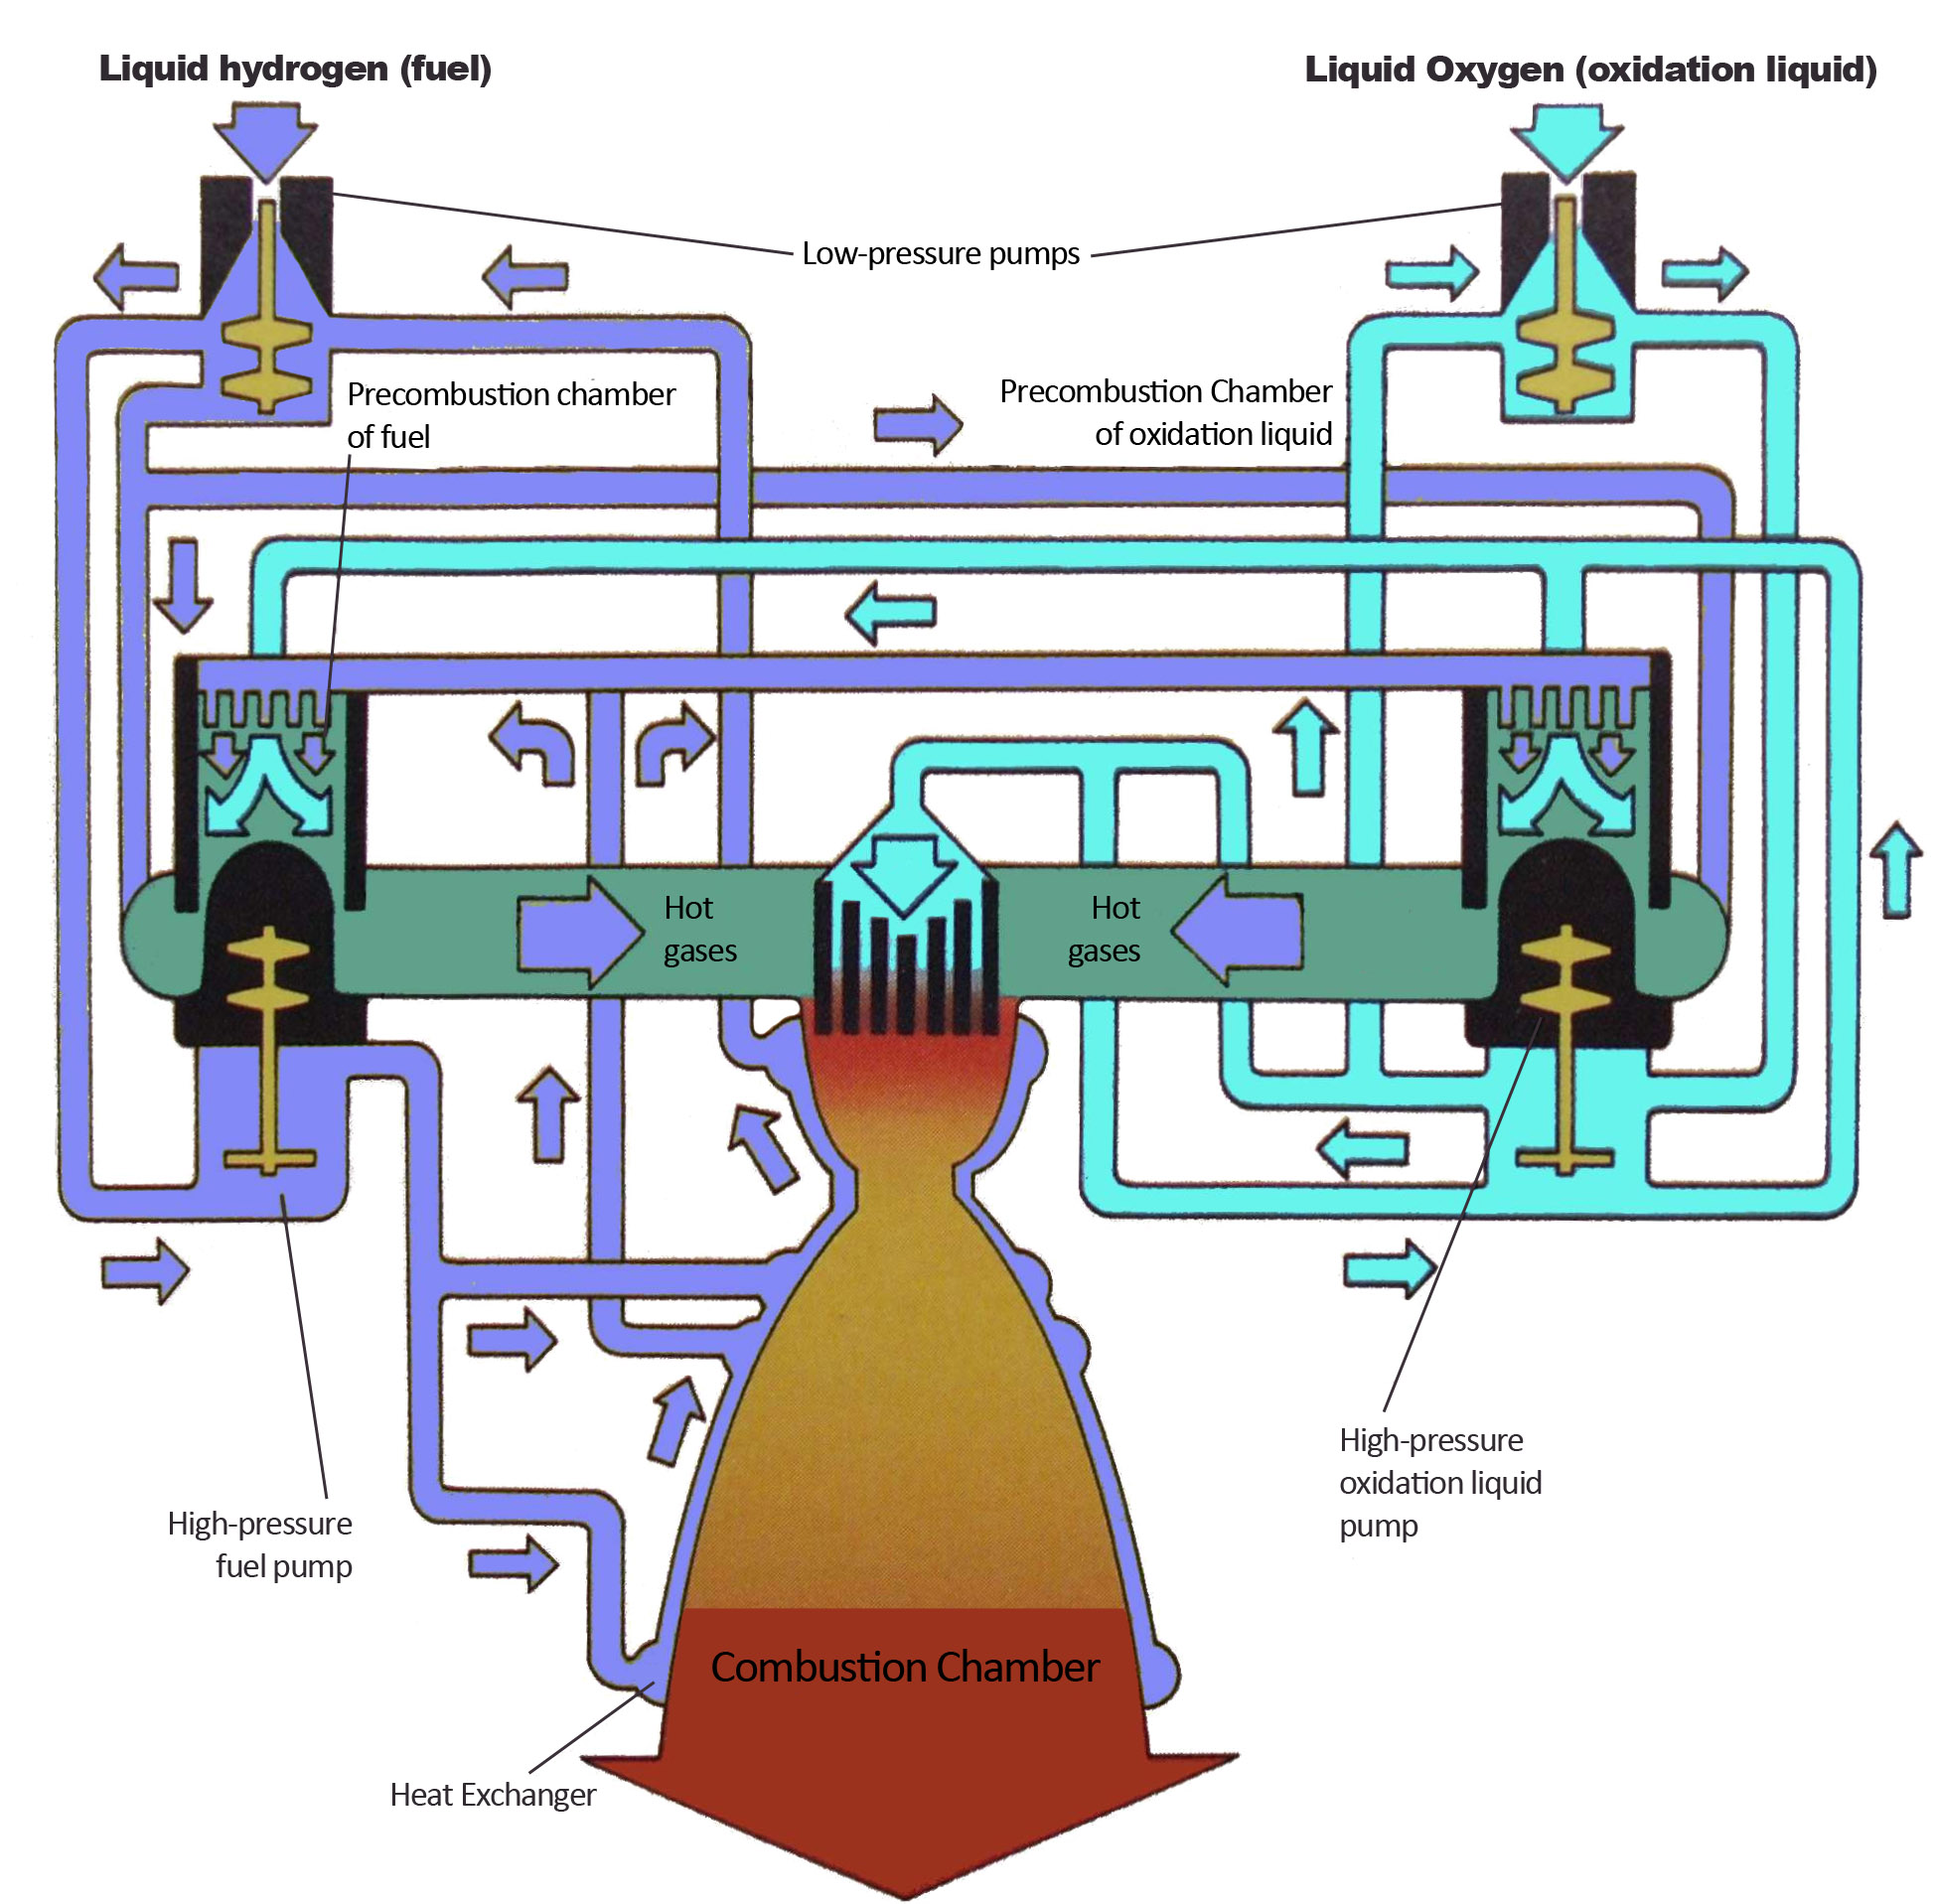 file hydrogen oxigen external combustion engine 2010 04 02 jpg wikimedia commons Simple Combustion Engine Diagram simple diagram of external combustion engine